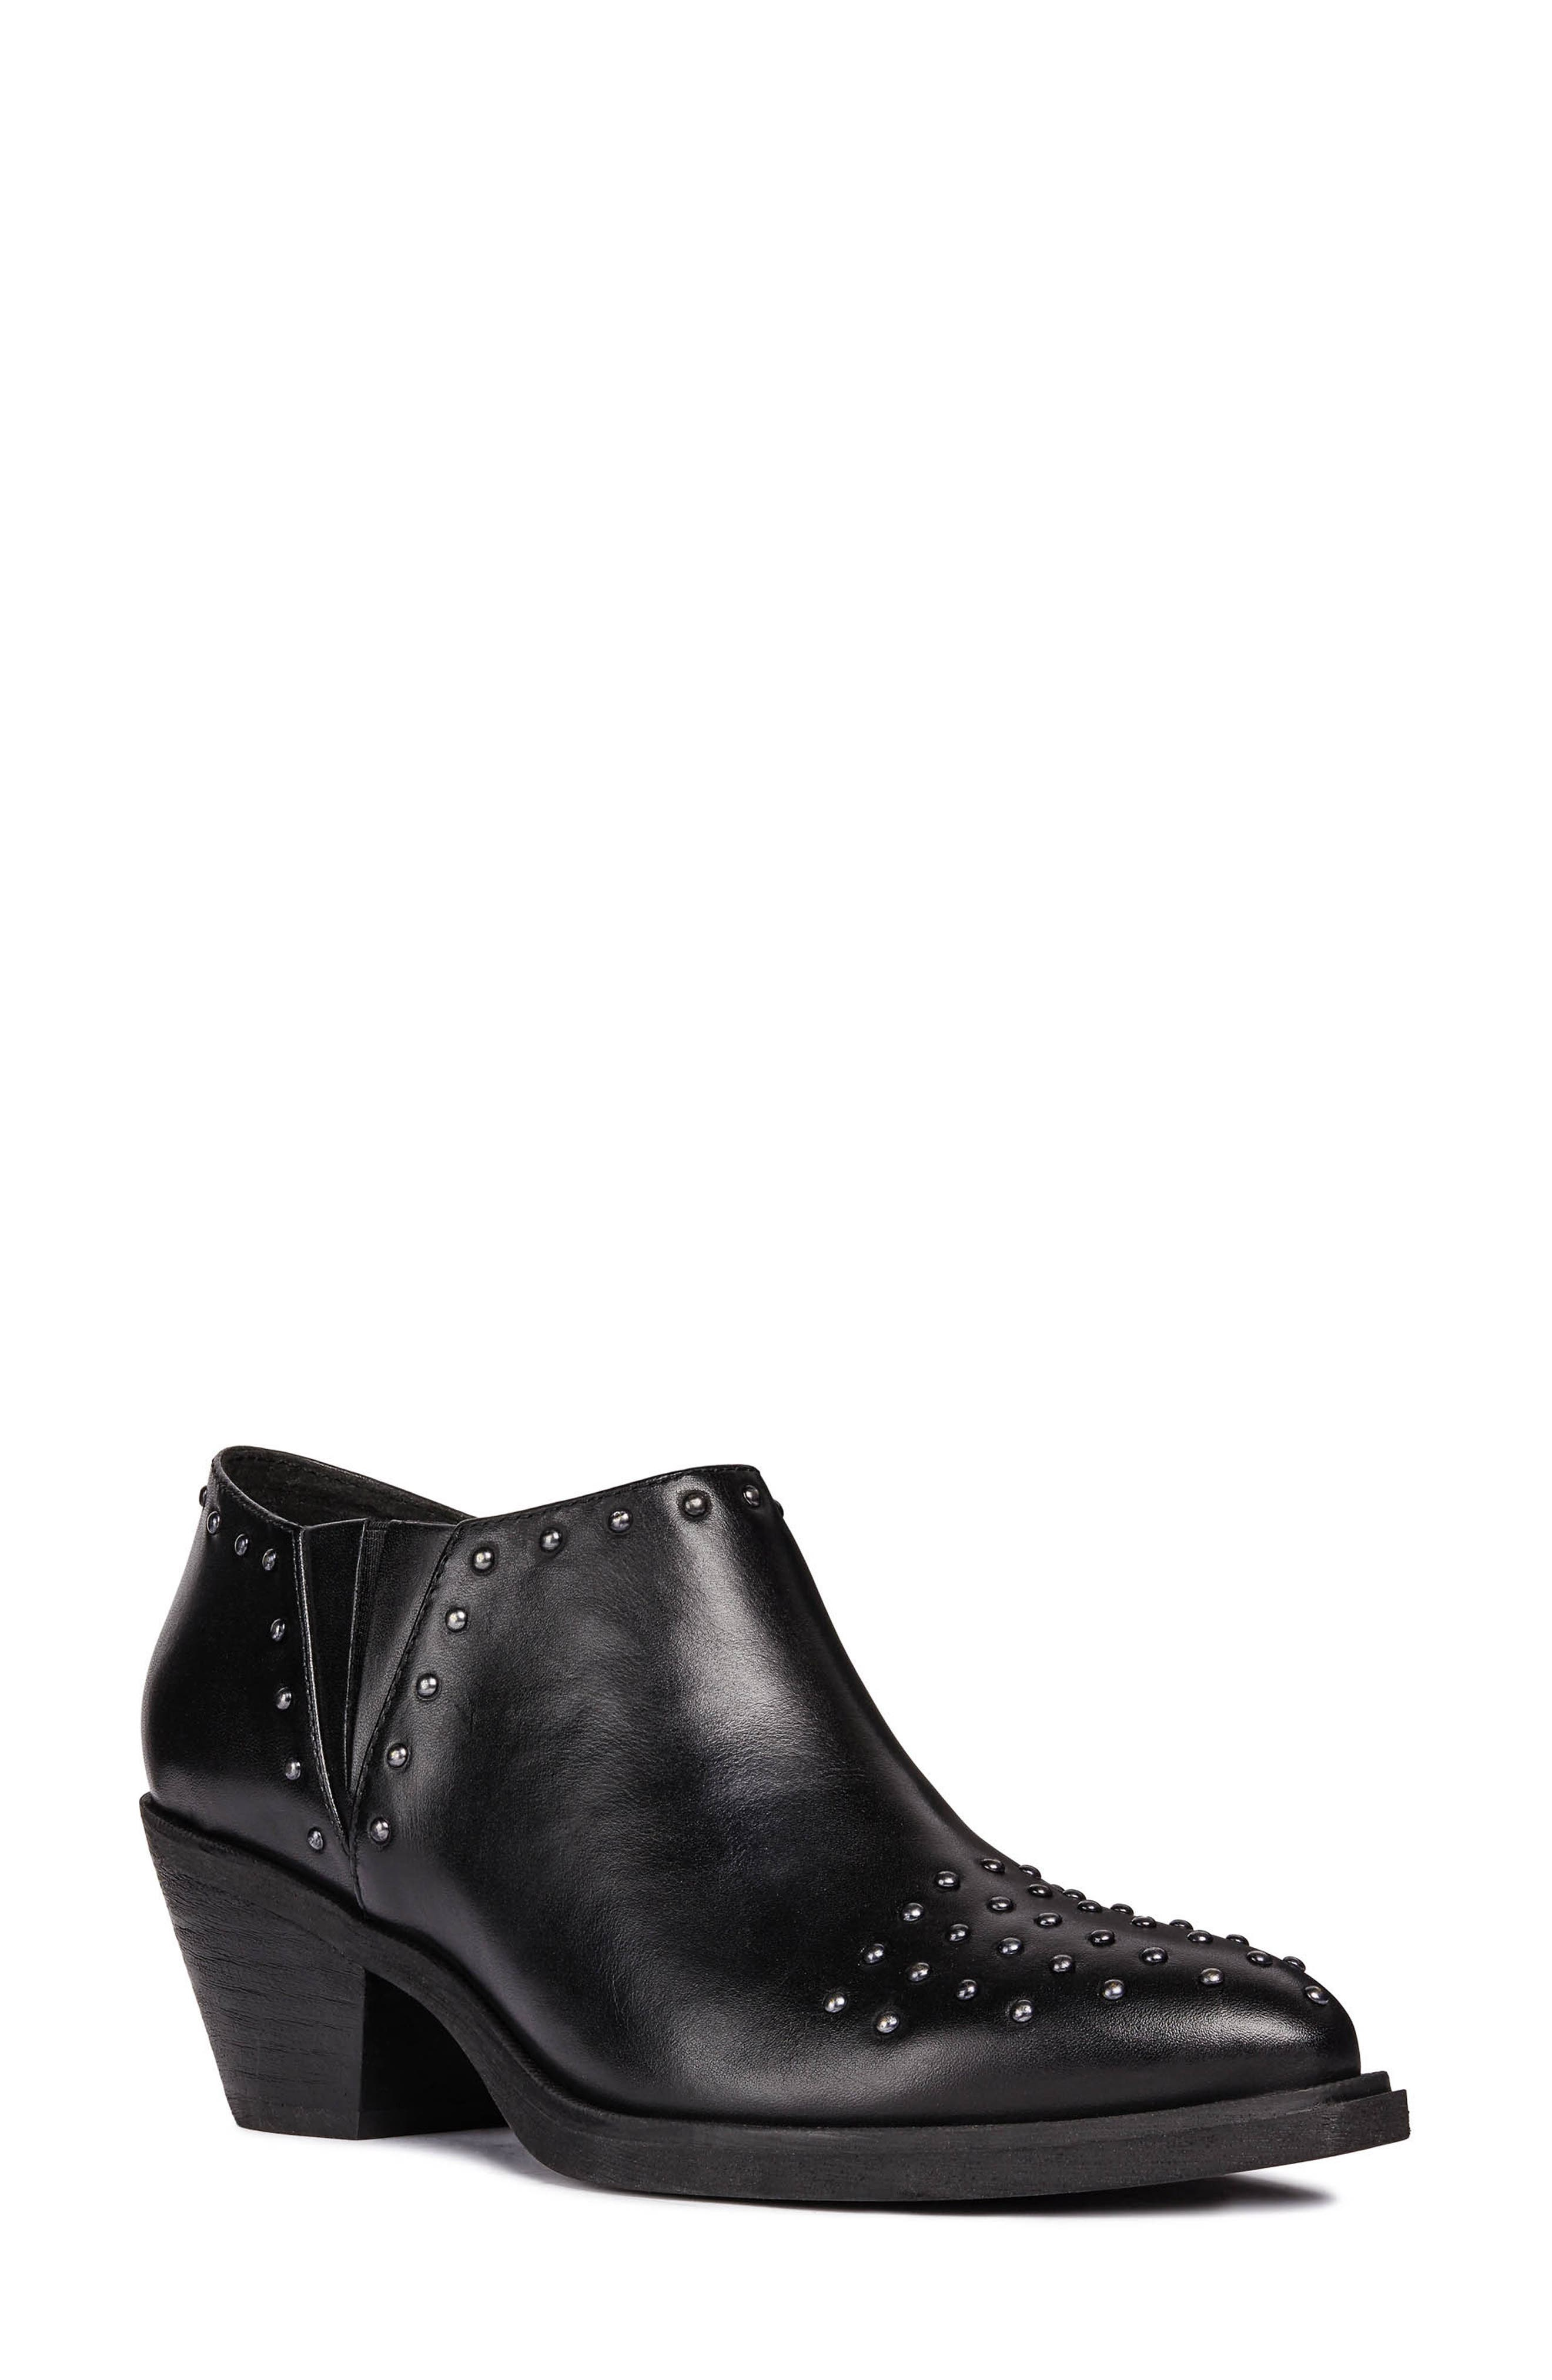 GEOX Lovai Ankle Boot, Main, color, BLACK LEATHER